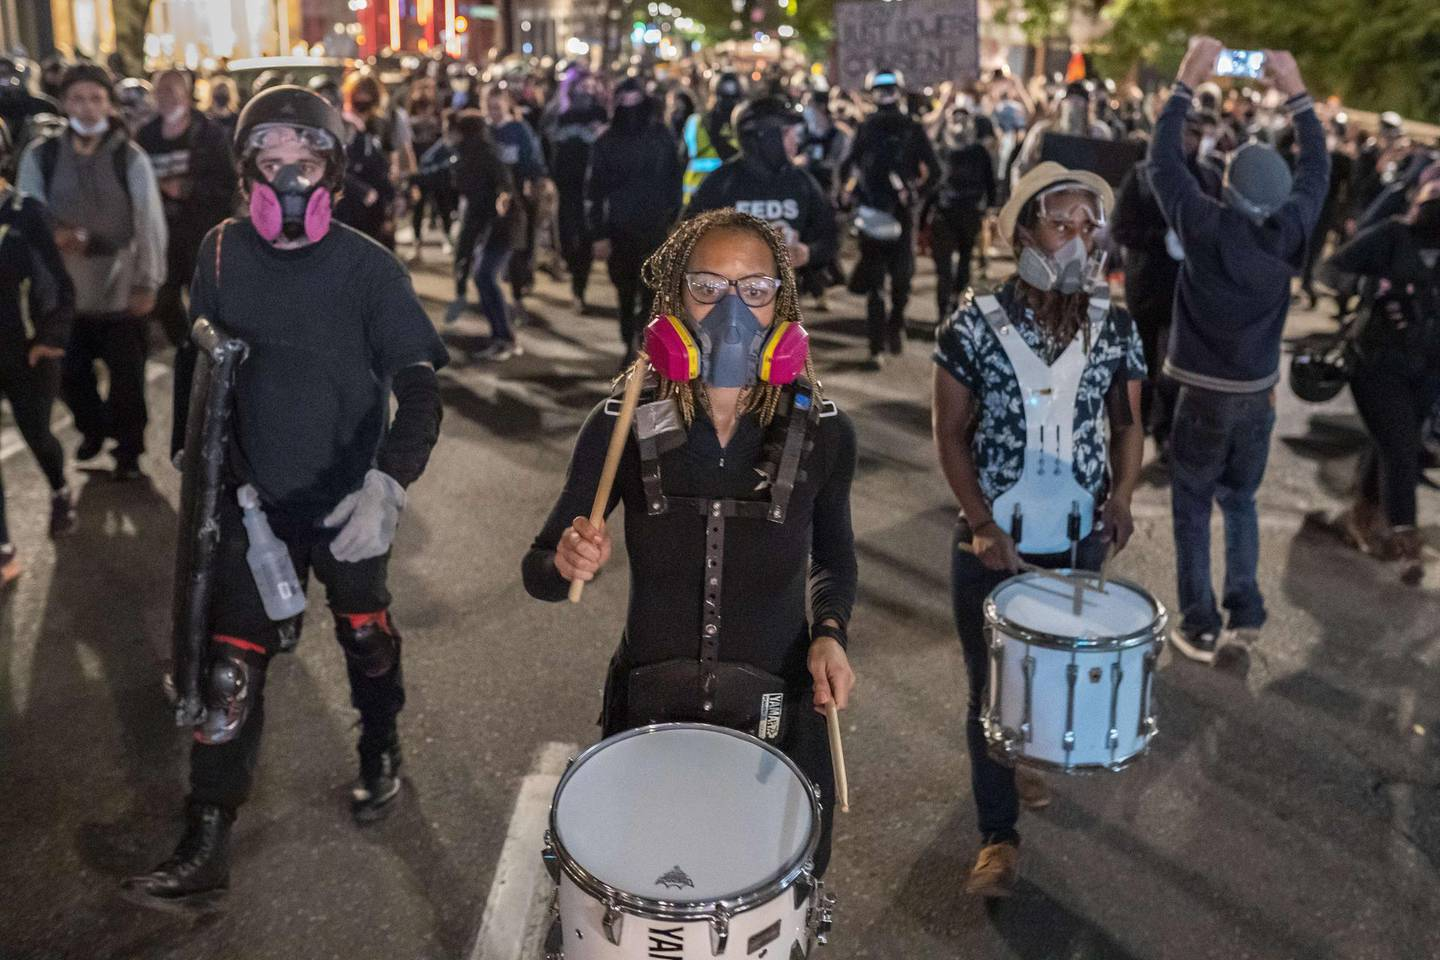 PORTLAND, OR - SEPTEMBER 19: A crowd of anti-police protesters march through downtown on September 19, 2020 in Portland, Oregon. Protests against police brutality and racial injustice resumed this weekend after activists called for a pause in response to hazardous air quality from nearby wildfire smoke.   Nathan Howard/Getty Images/AFP == FOR NEWSPAPERS, INTERNET, TELCOS & TELEVISION USE ONLY ==